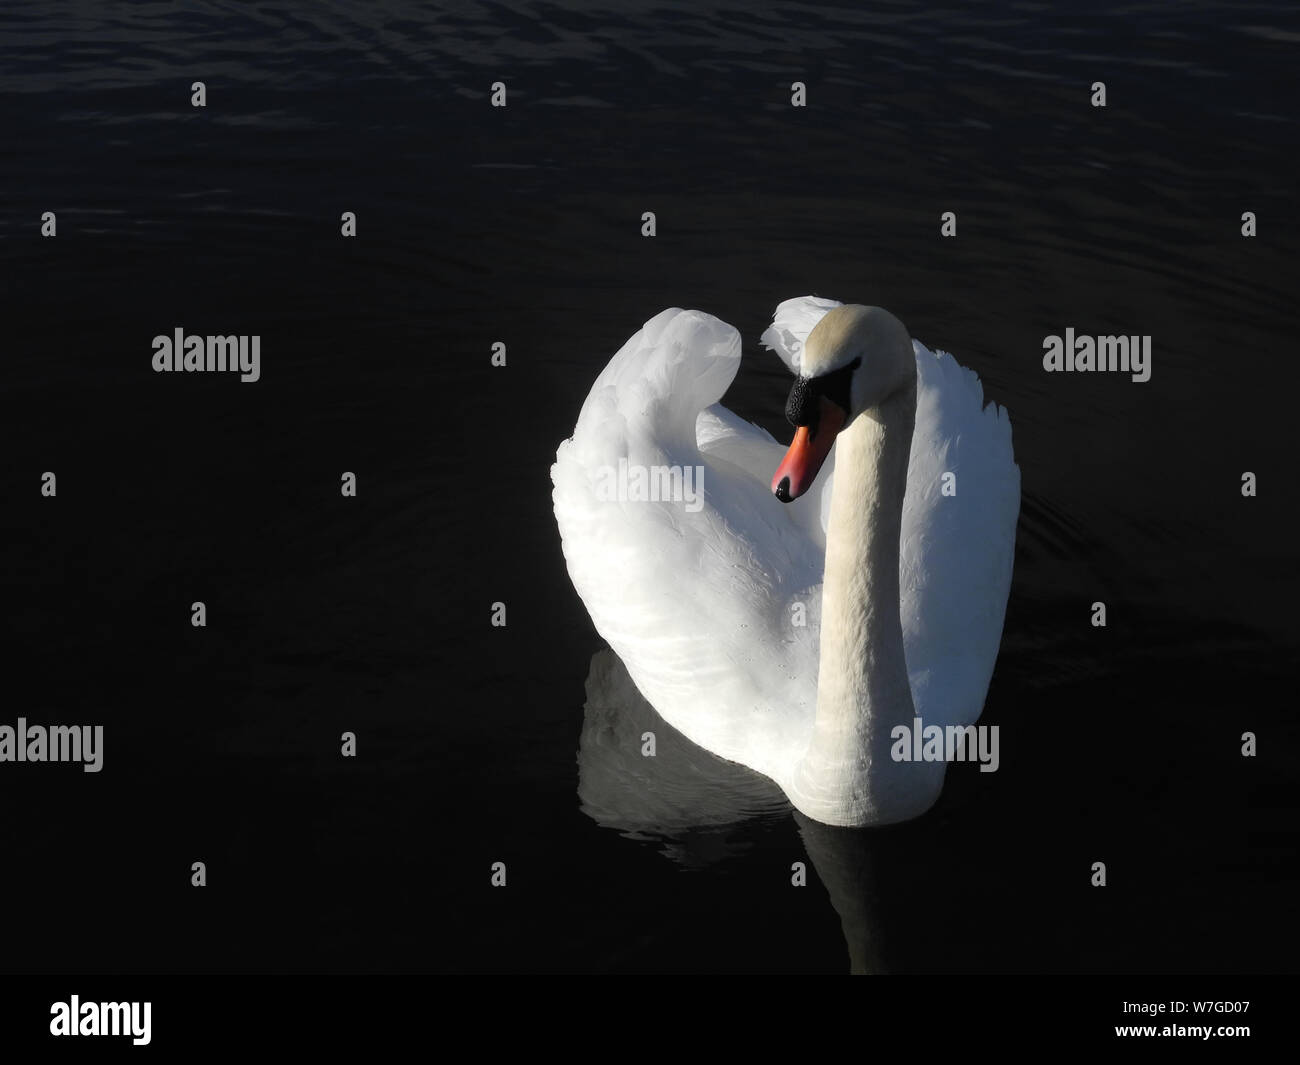 Mute swan showing pure white plumage against black background Stock Photo